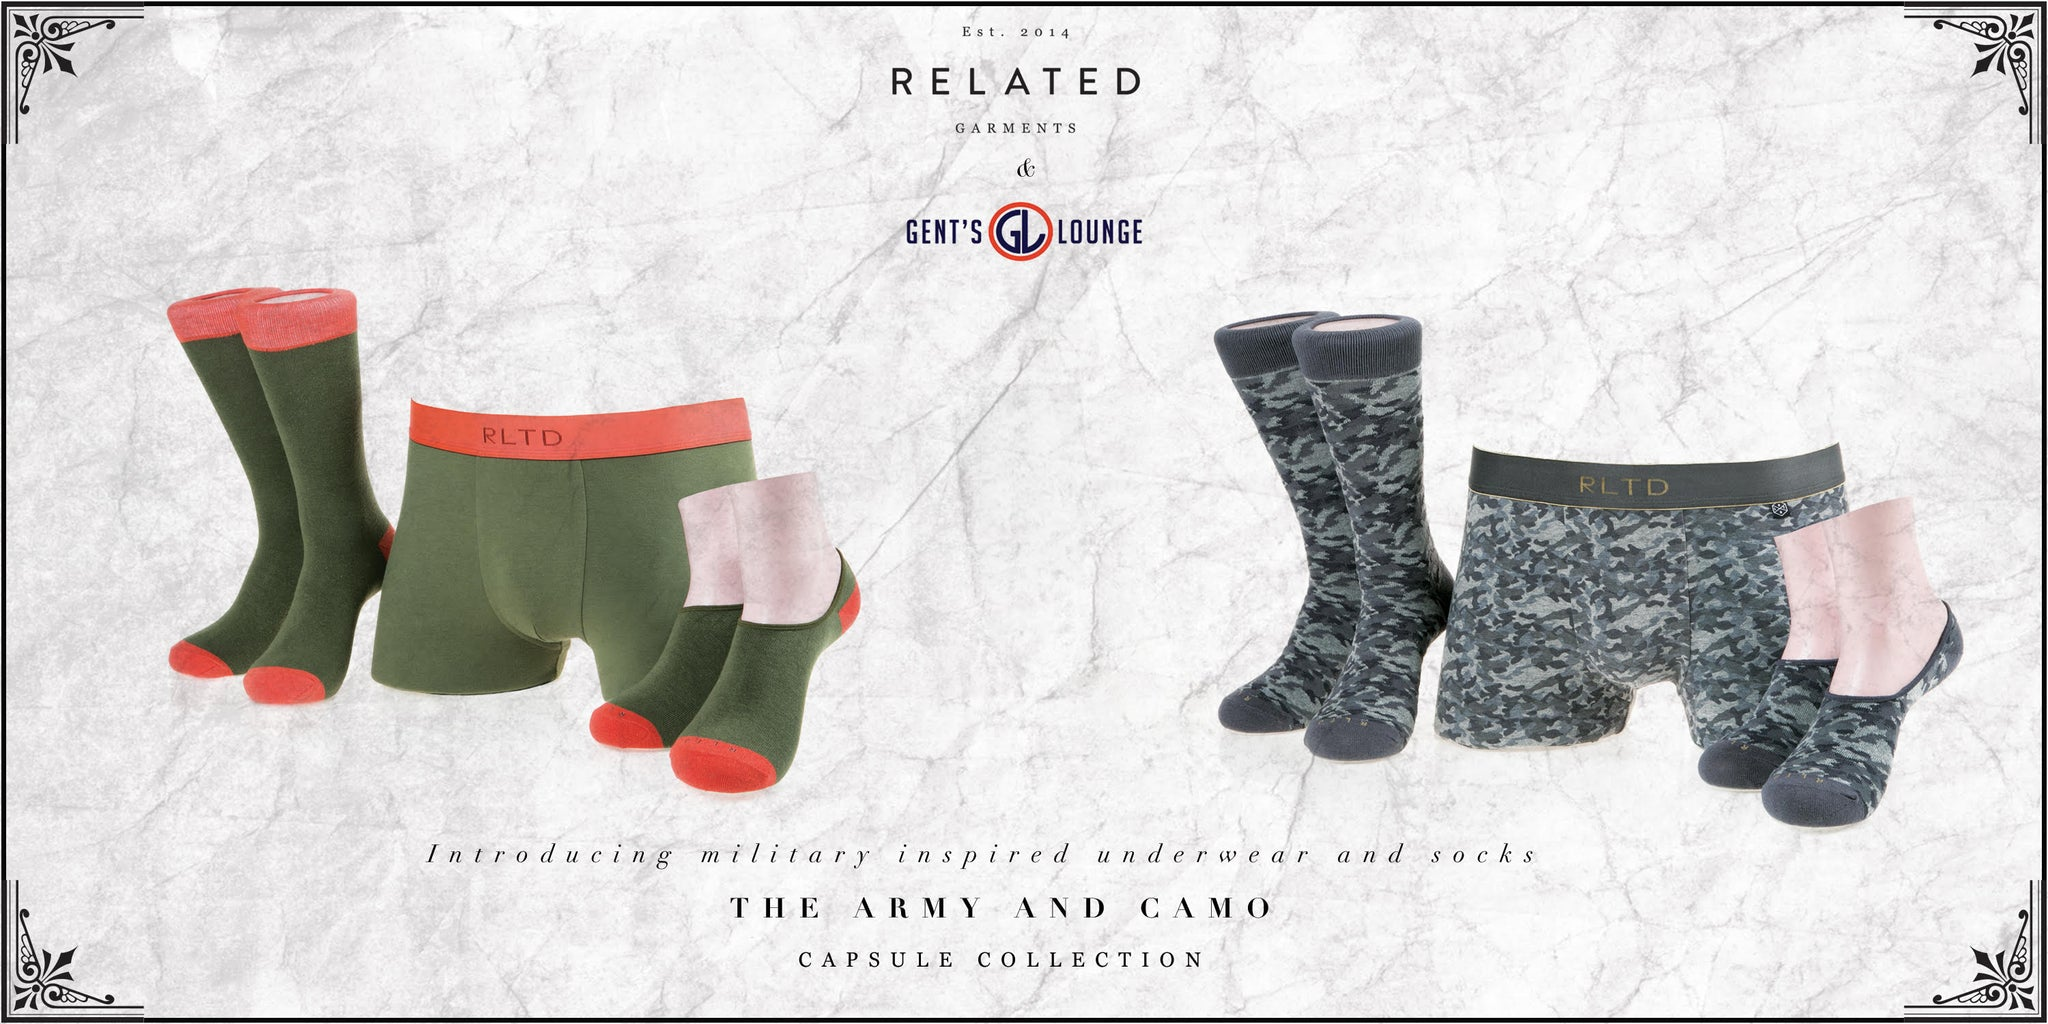 Gents Lounge X Related Garments Limited Edition Underwear and Socks